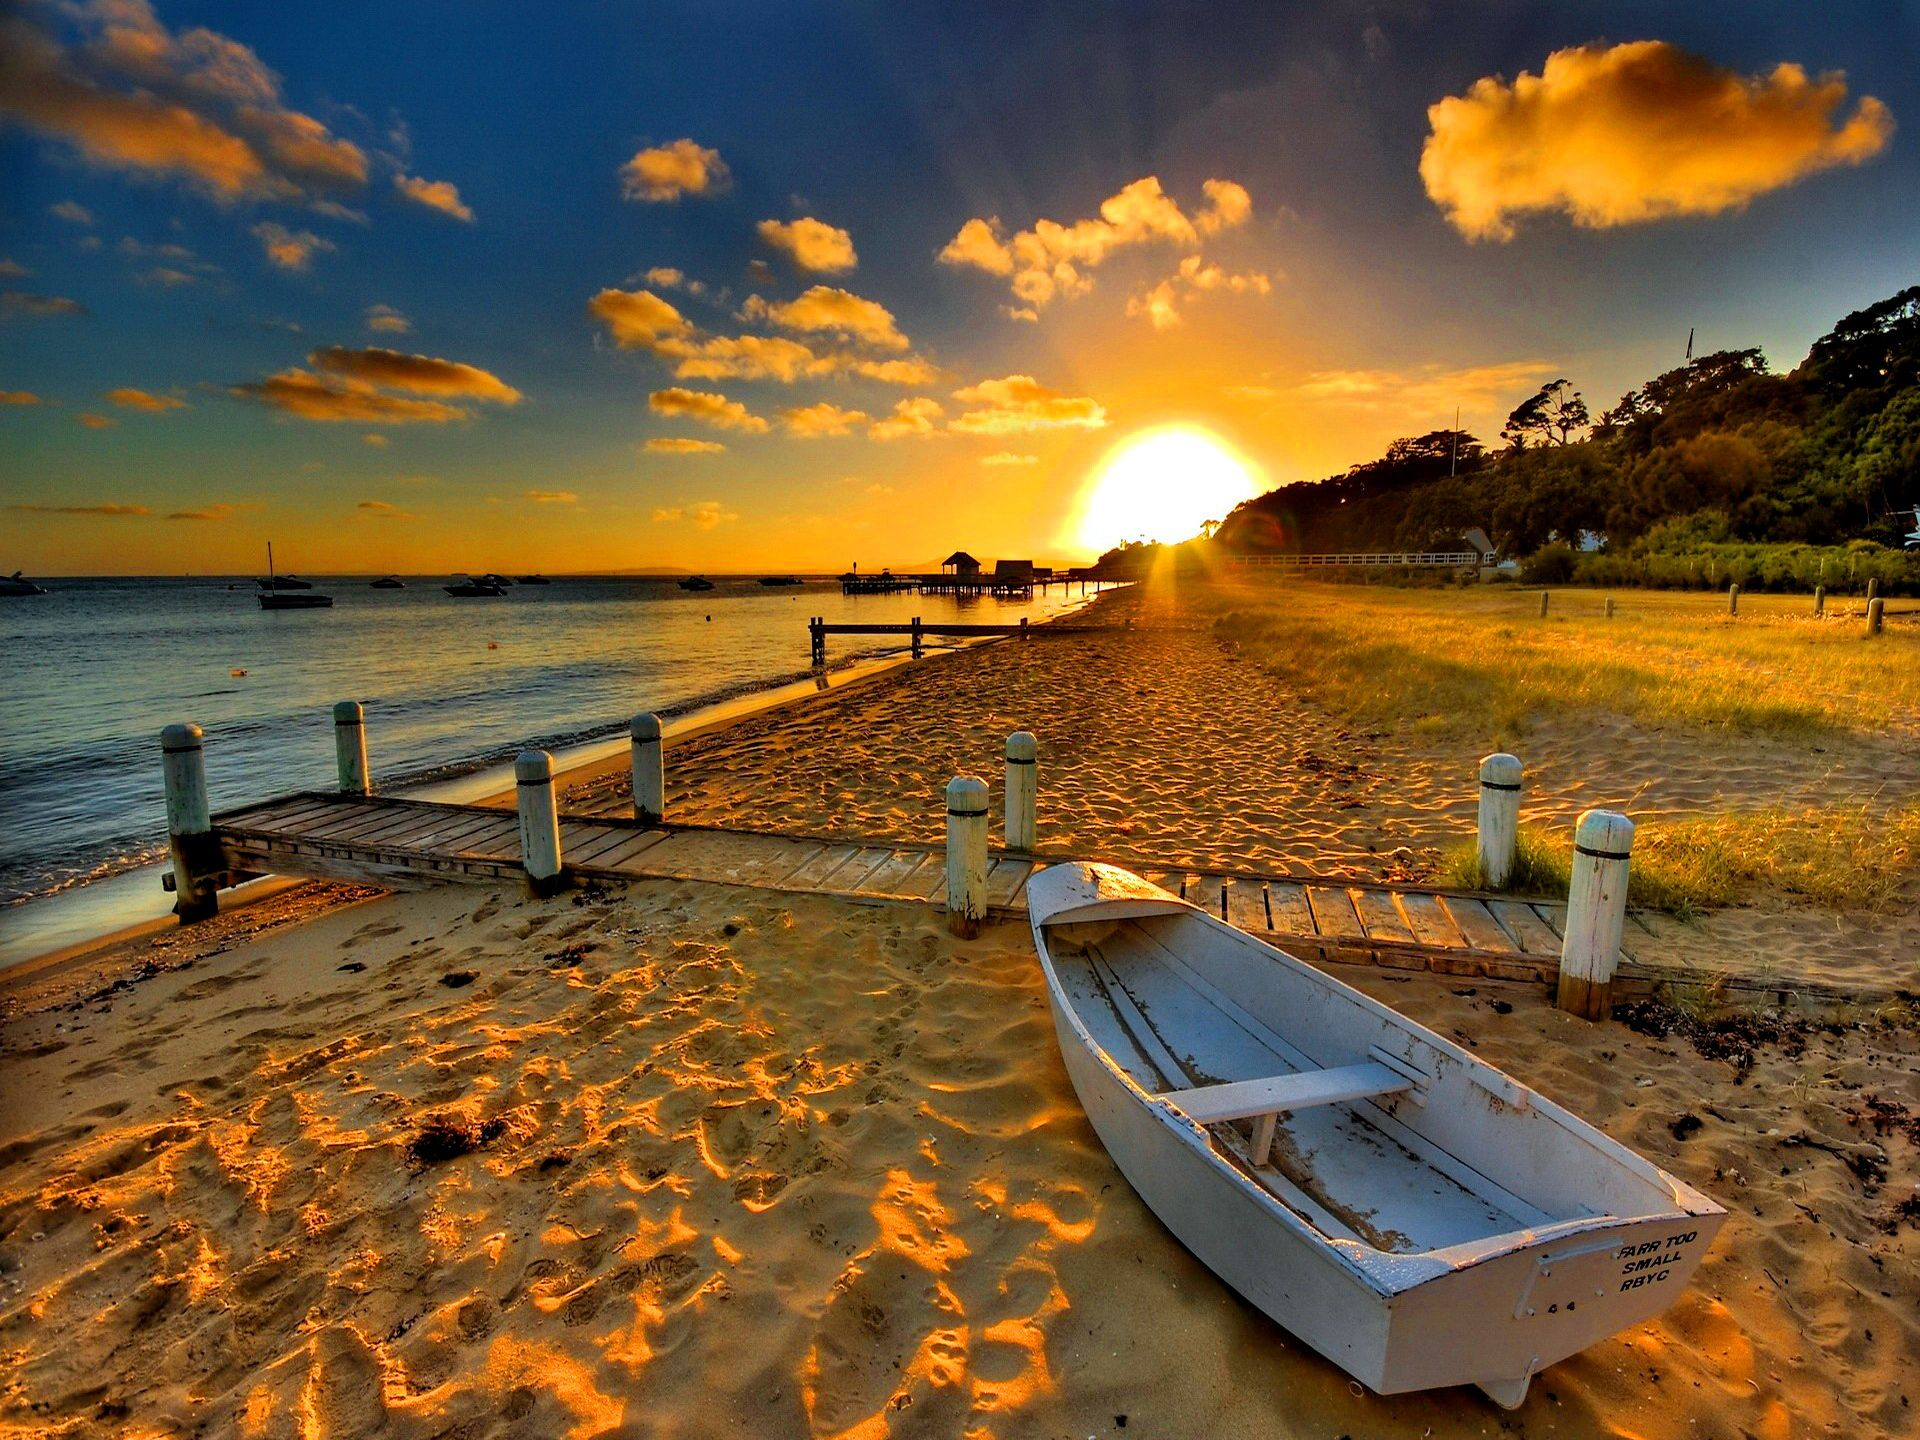 Beach Sunset Wallpaper Find best latest Beach Sunset